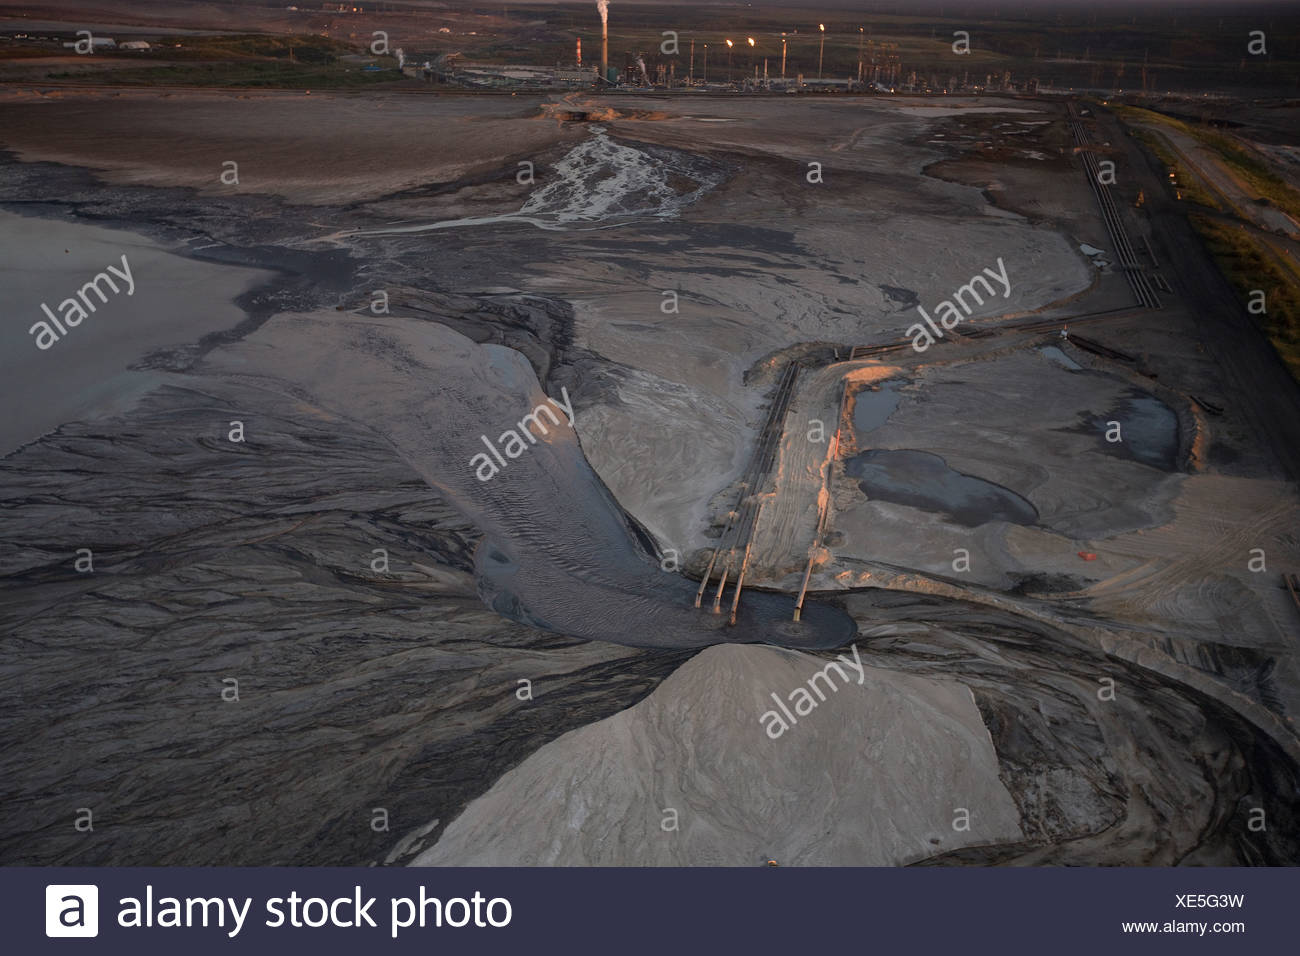 Tailings Pond outflow pipes from the Bitumen Separation Plant, Suncor Millenium oil sands mine north of Fort McMurray, Alberta, - Stock Image